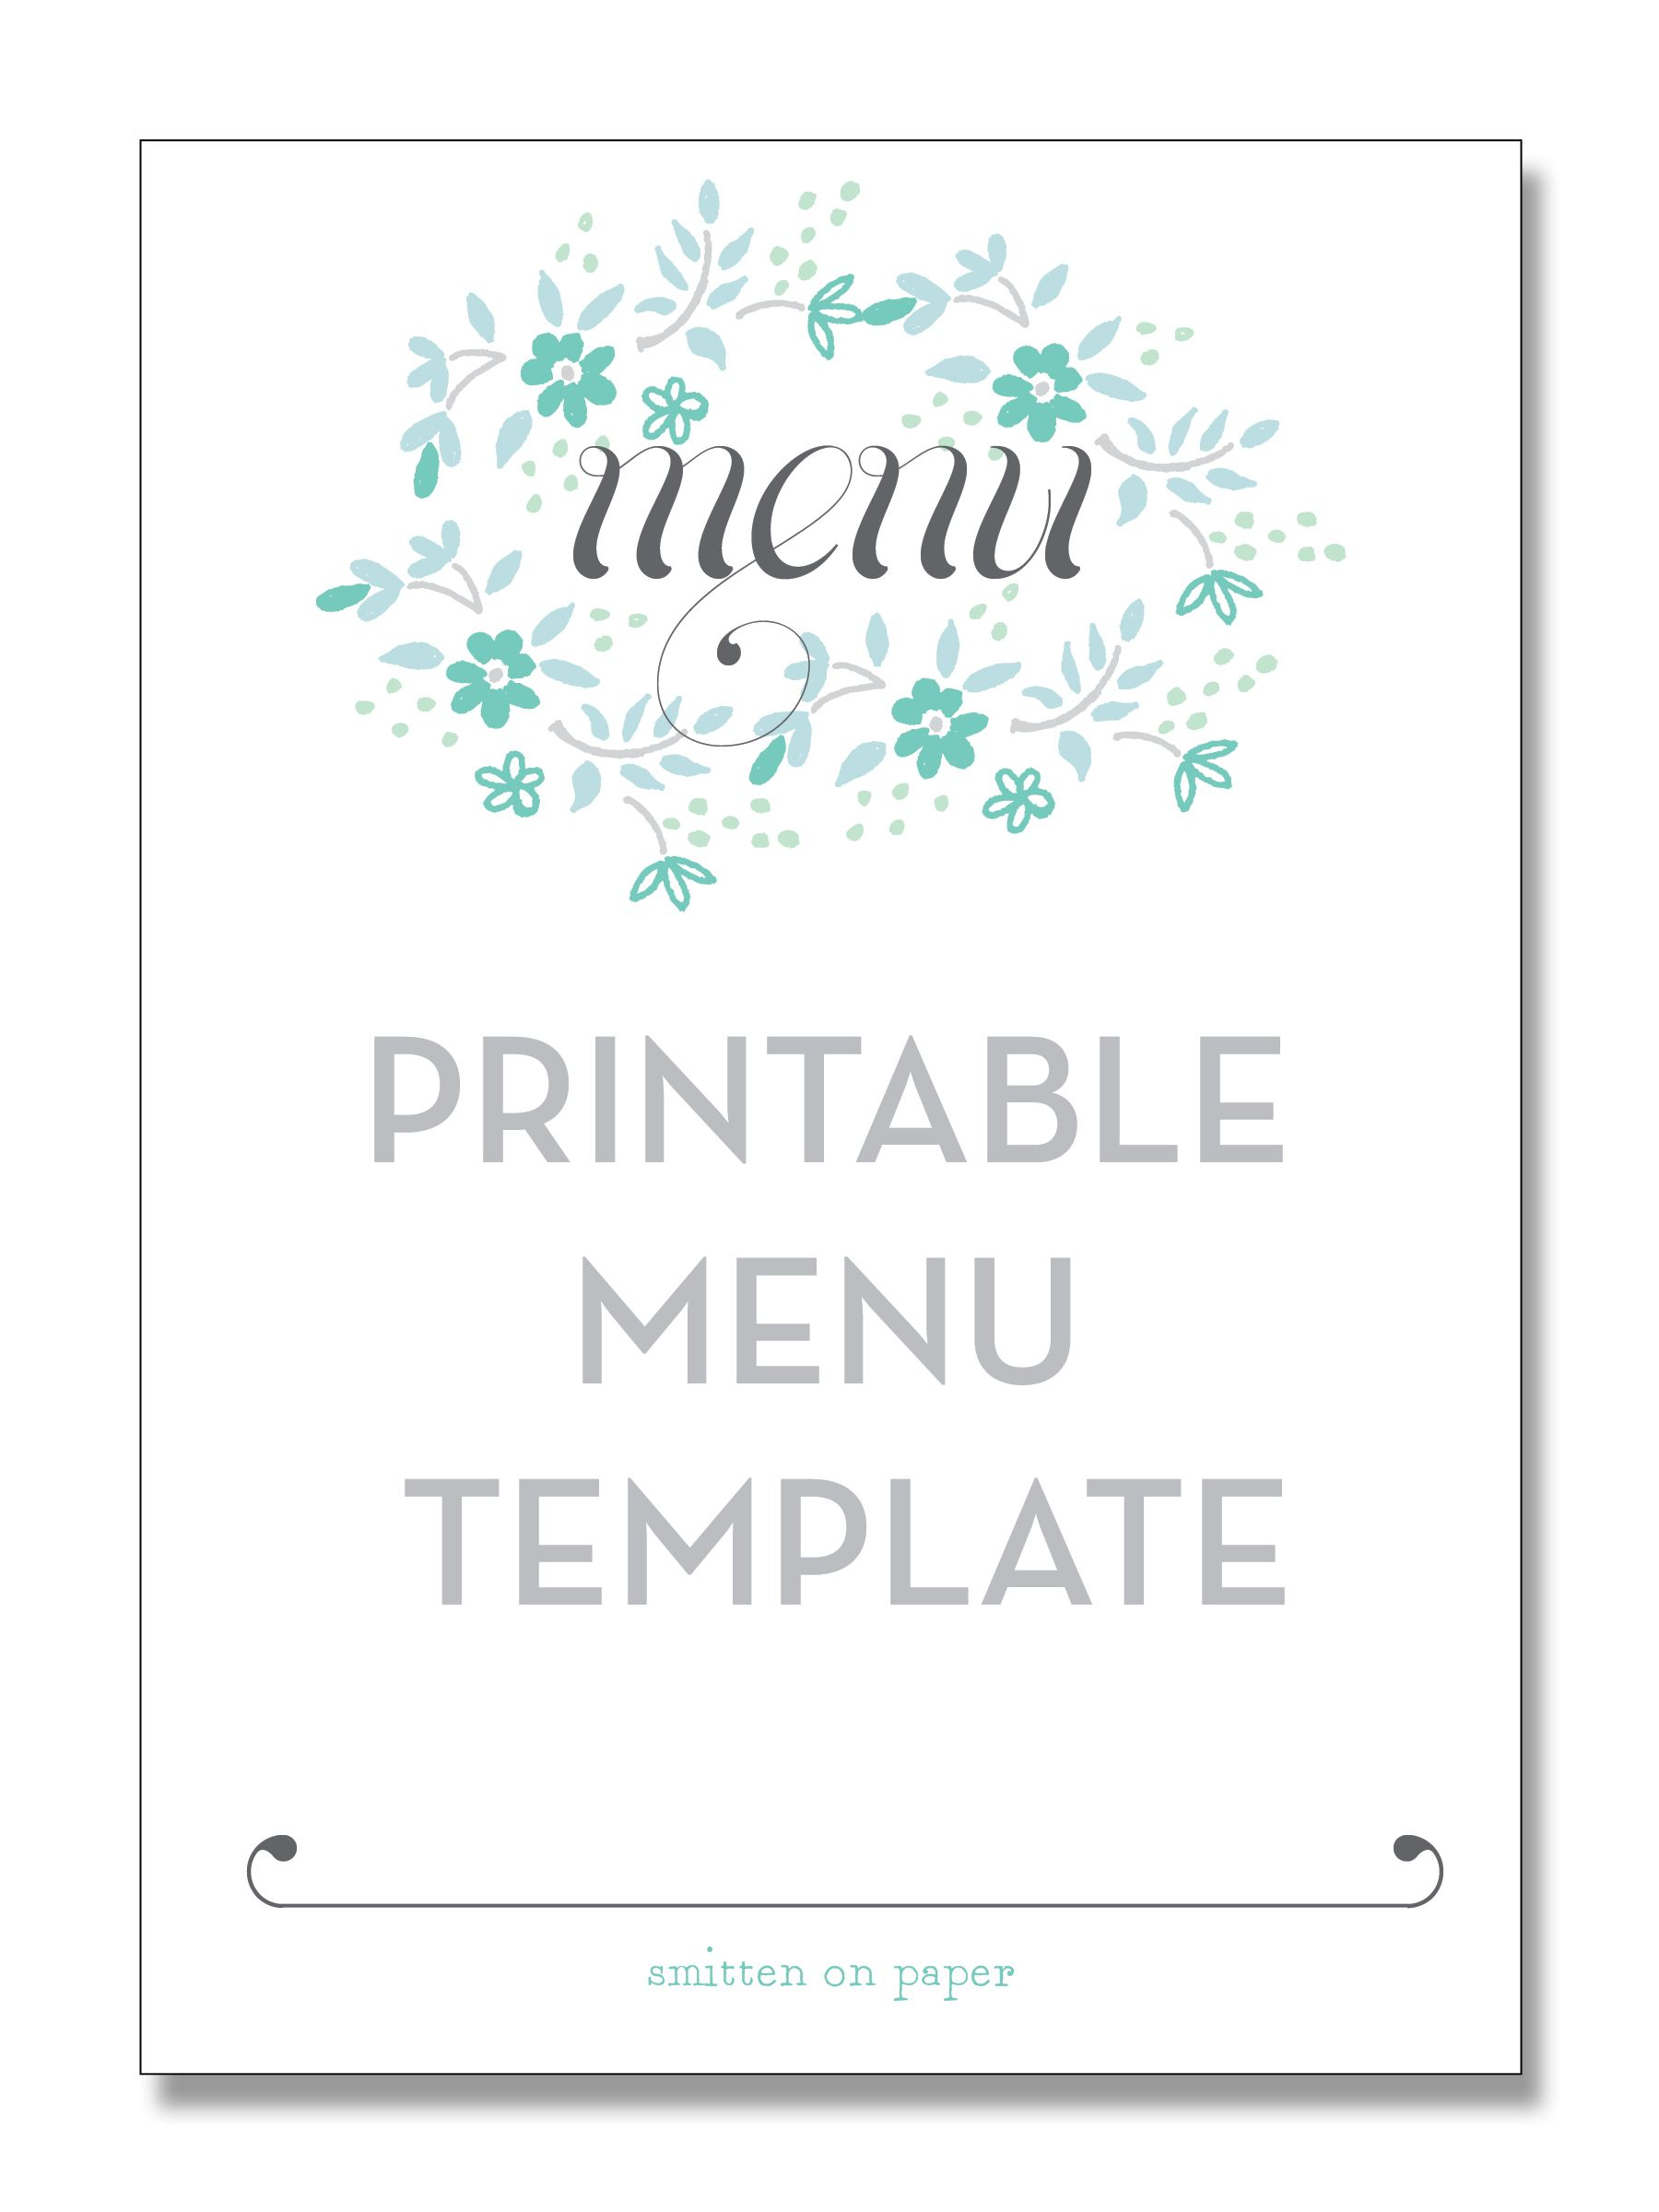 photograph regarding Printable Menu Template identified as Freebie Friday: Printable Menu Printables Free of charge printable